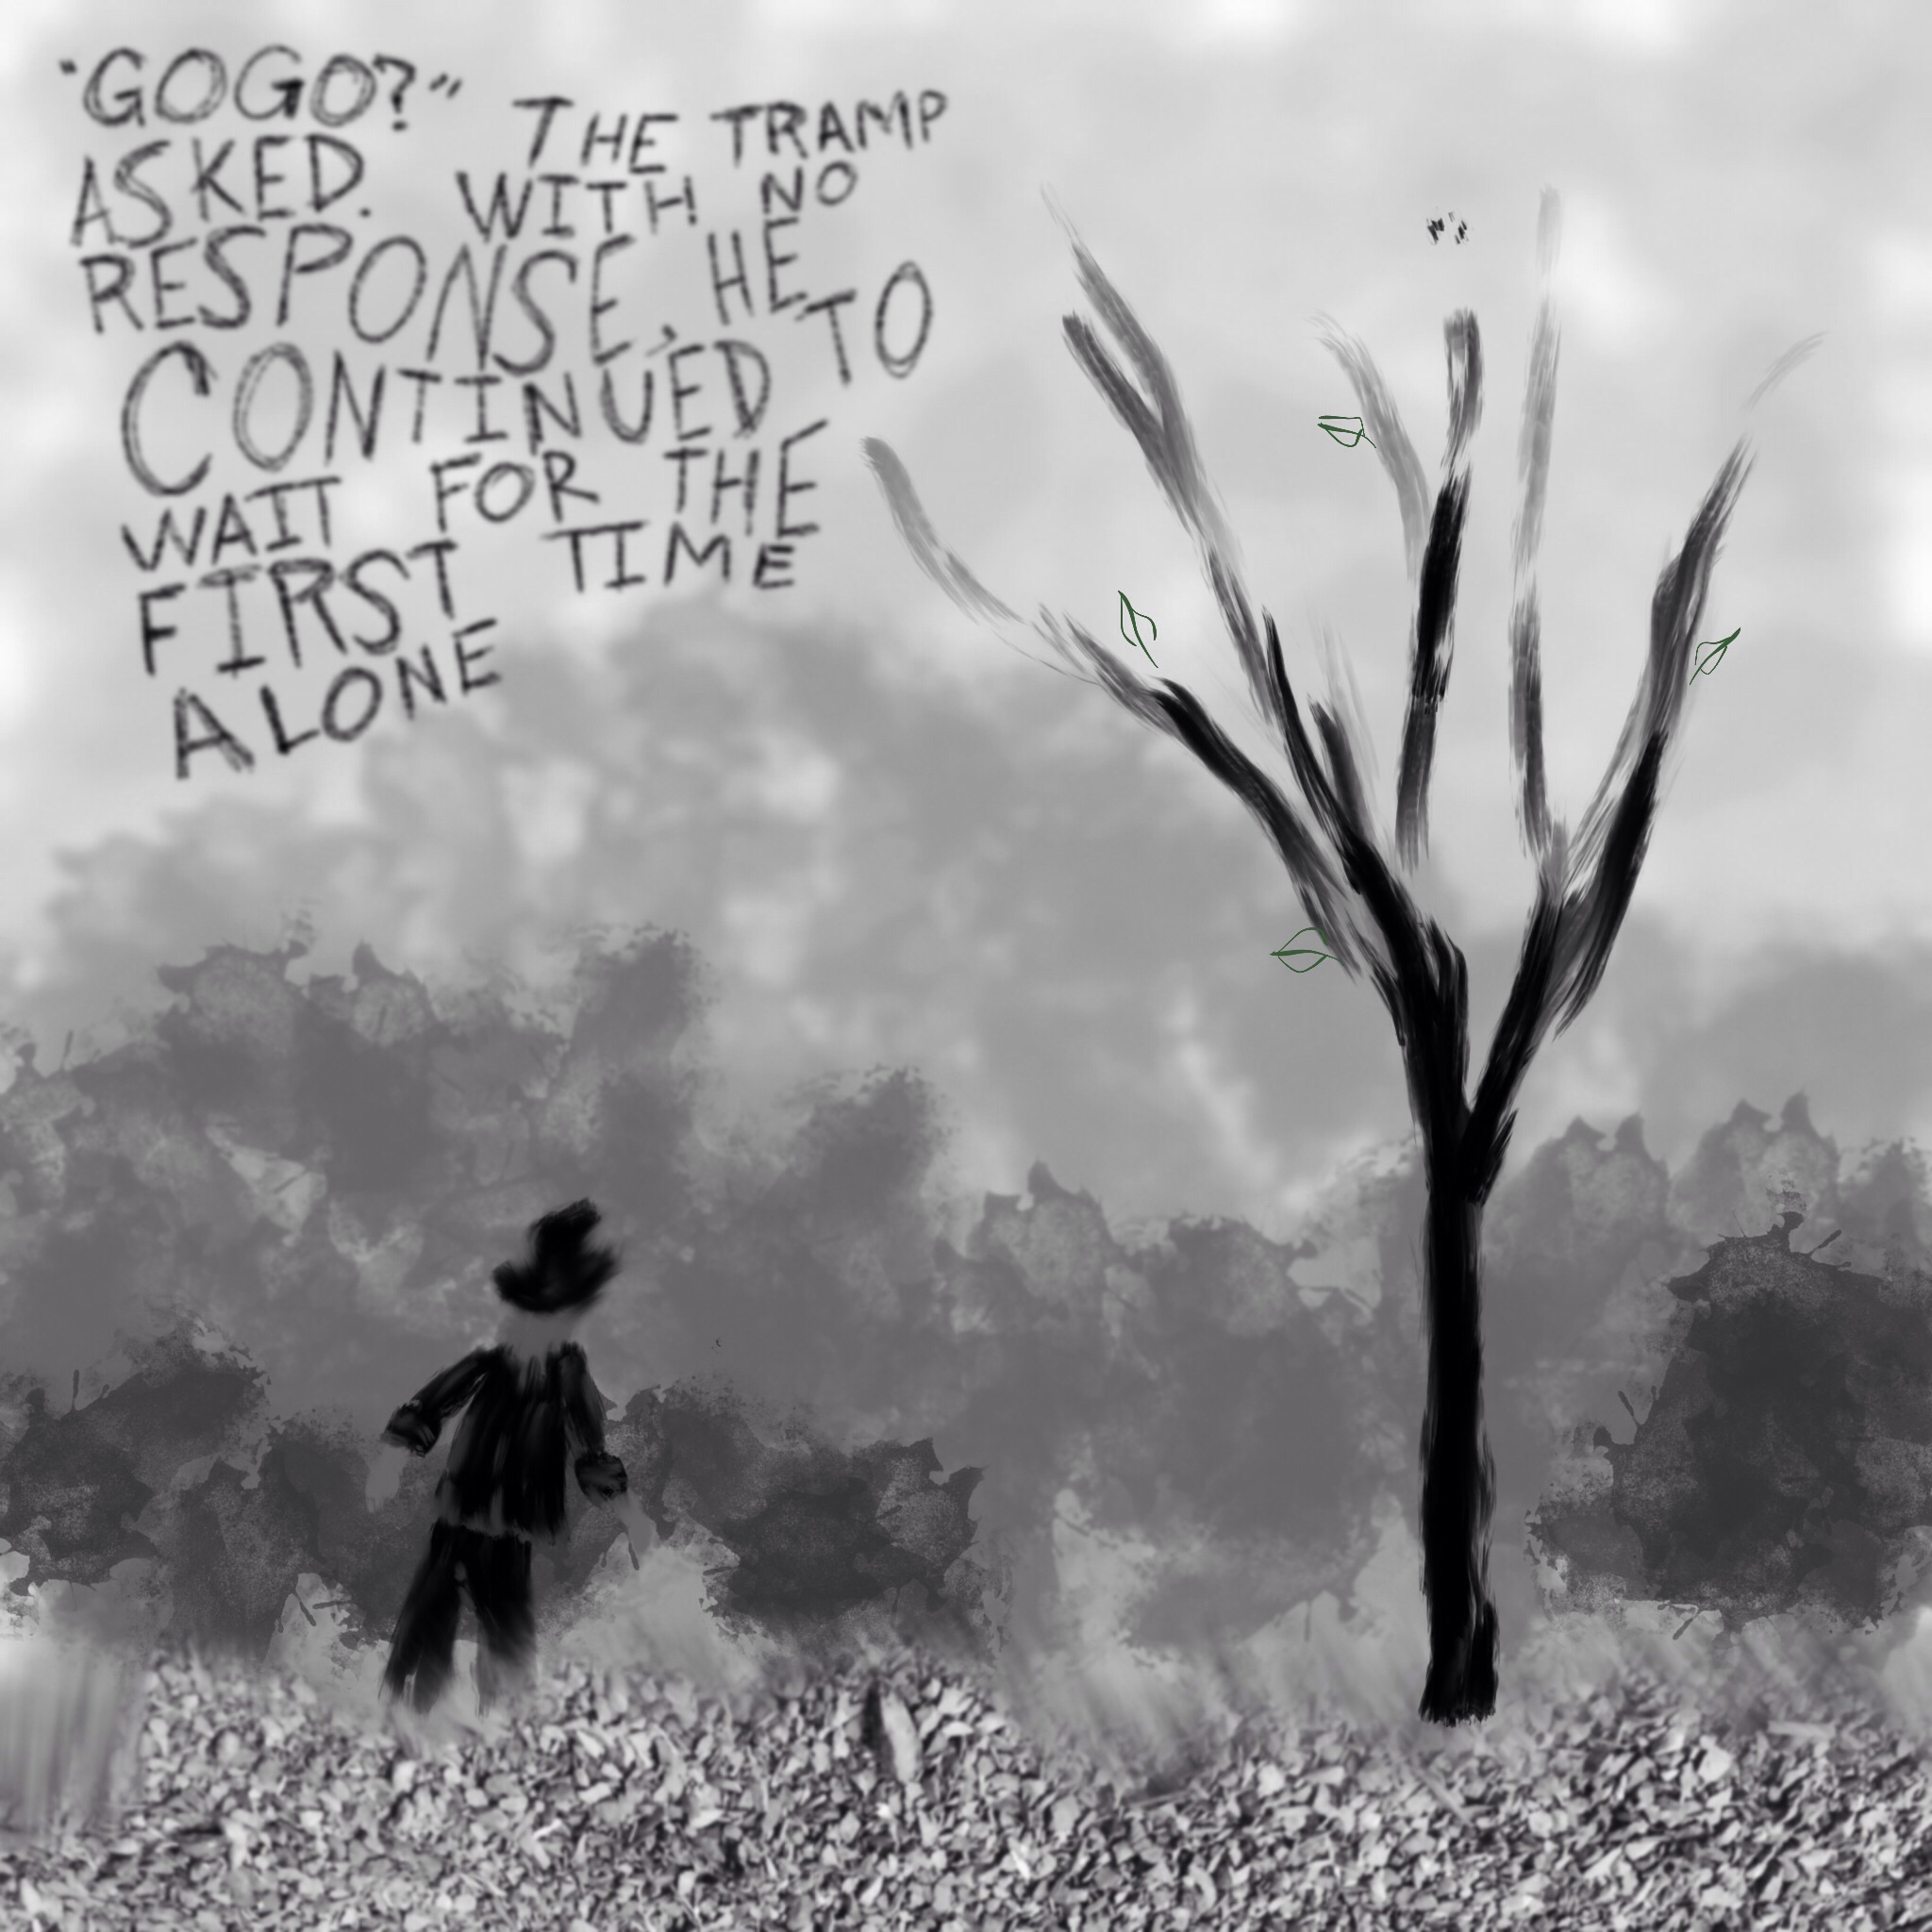 """""""Gogo?"""" The tramp asked. With no response, he continued to wait for the first time alone."""